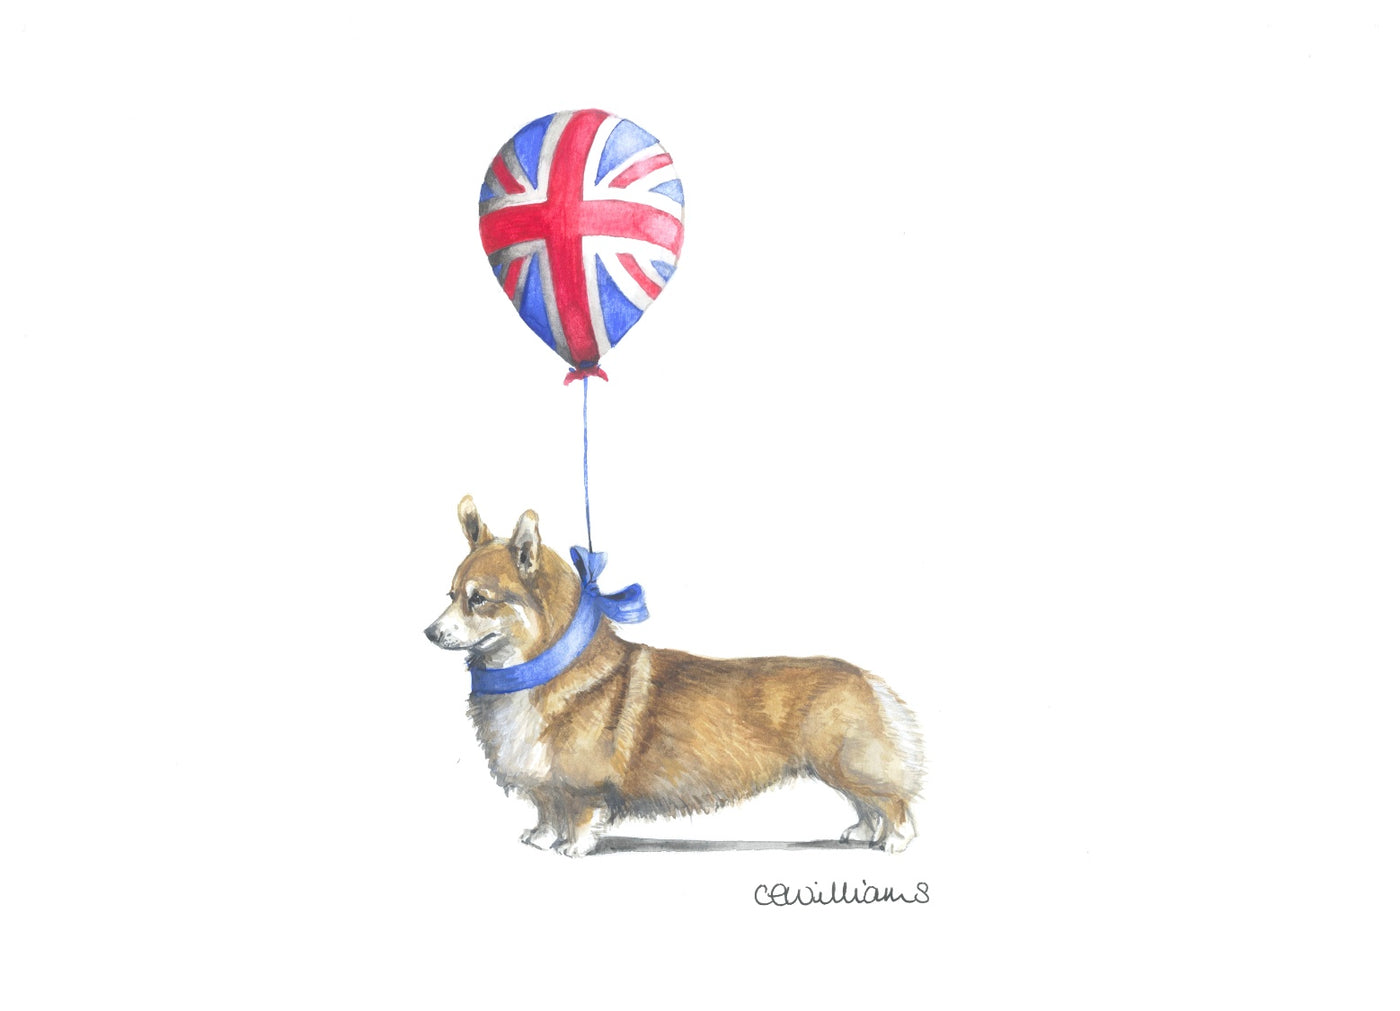 Corgi - Reginald and His Favourite Balloon Print